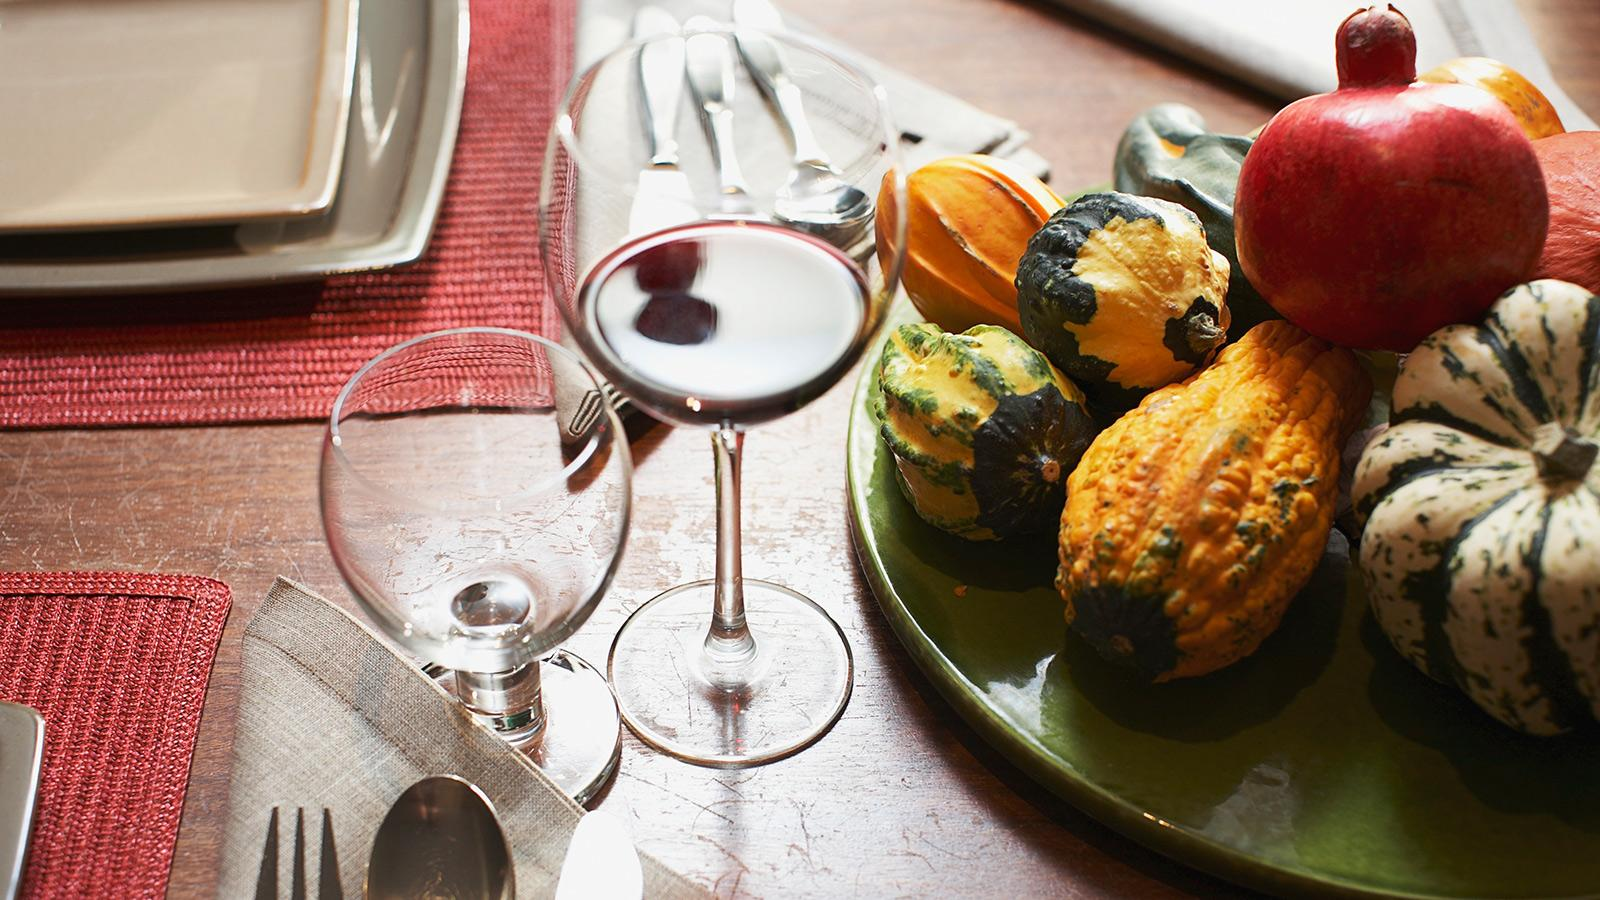 With so many different flavors on the Thanksgiving table, try pouring something unexpected.